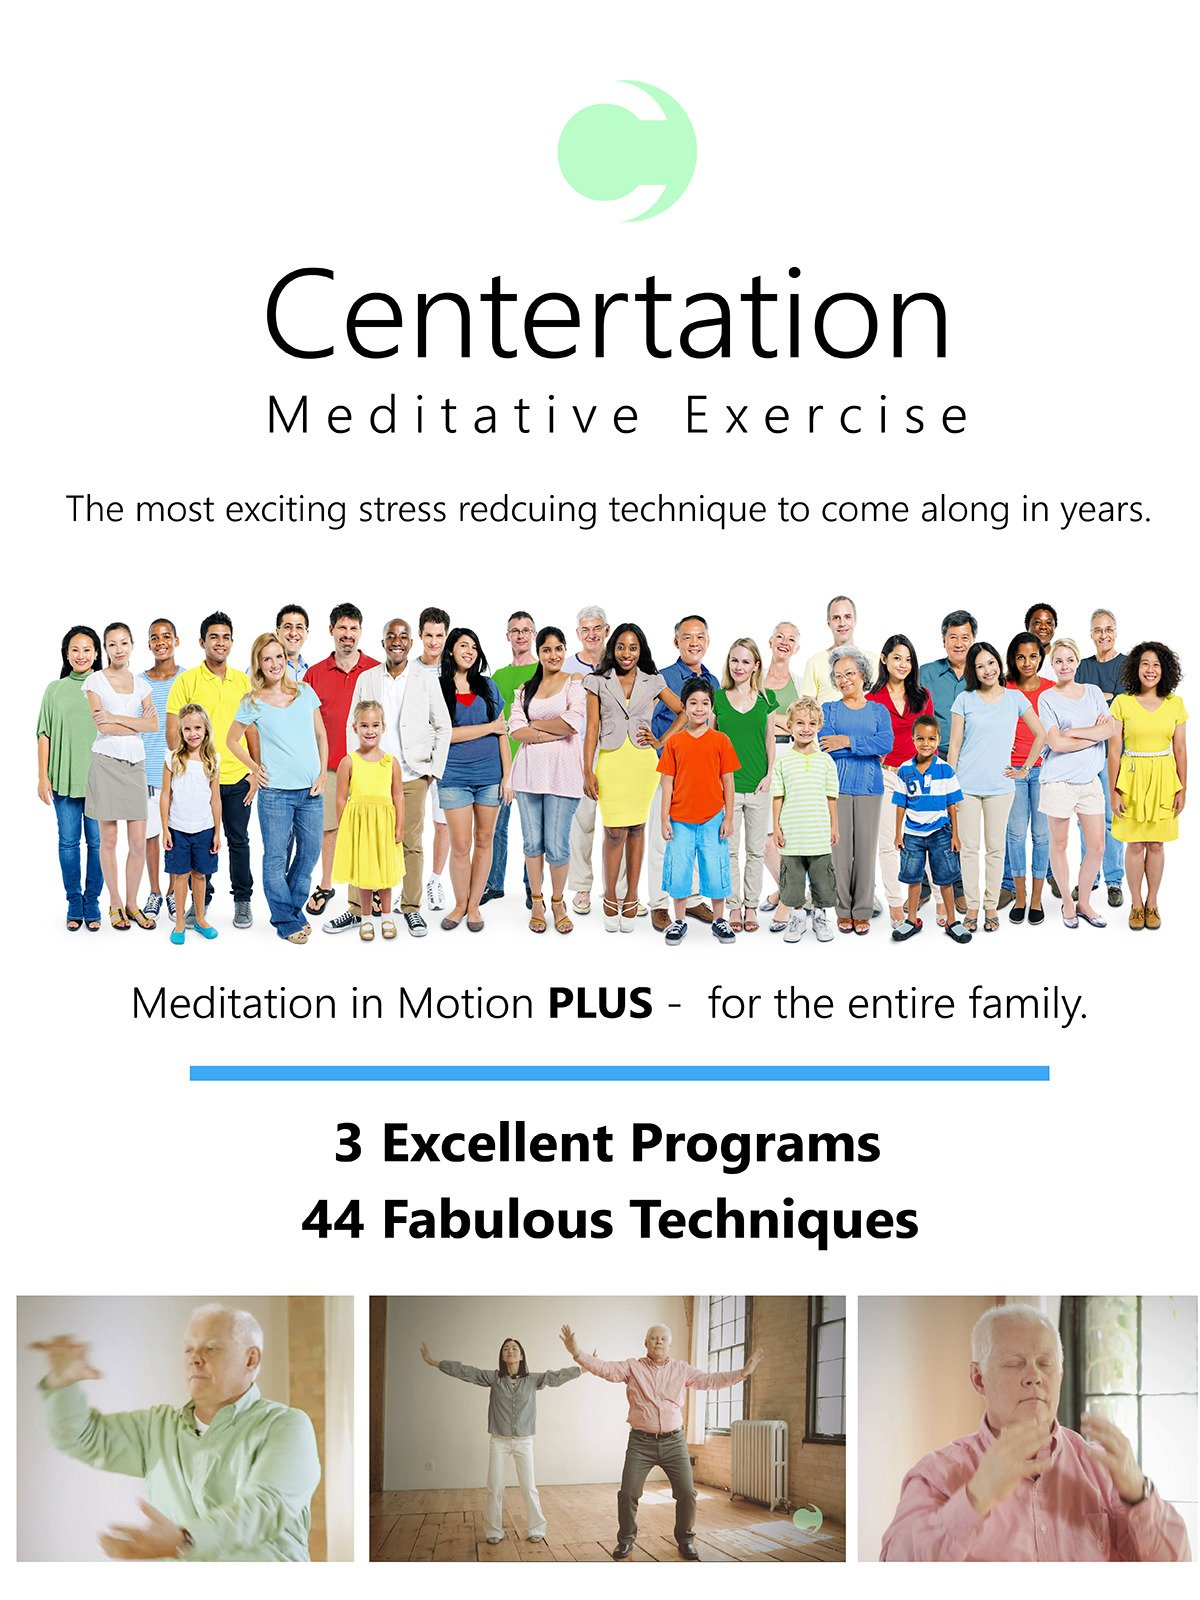 Centertation Meditative Exercise